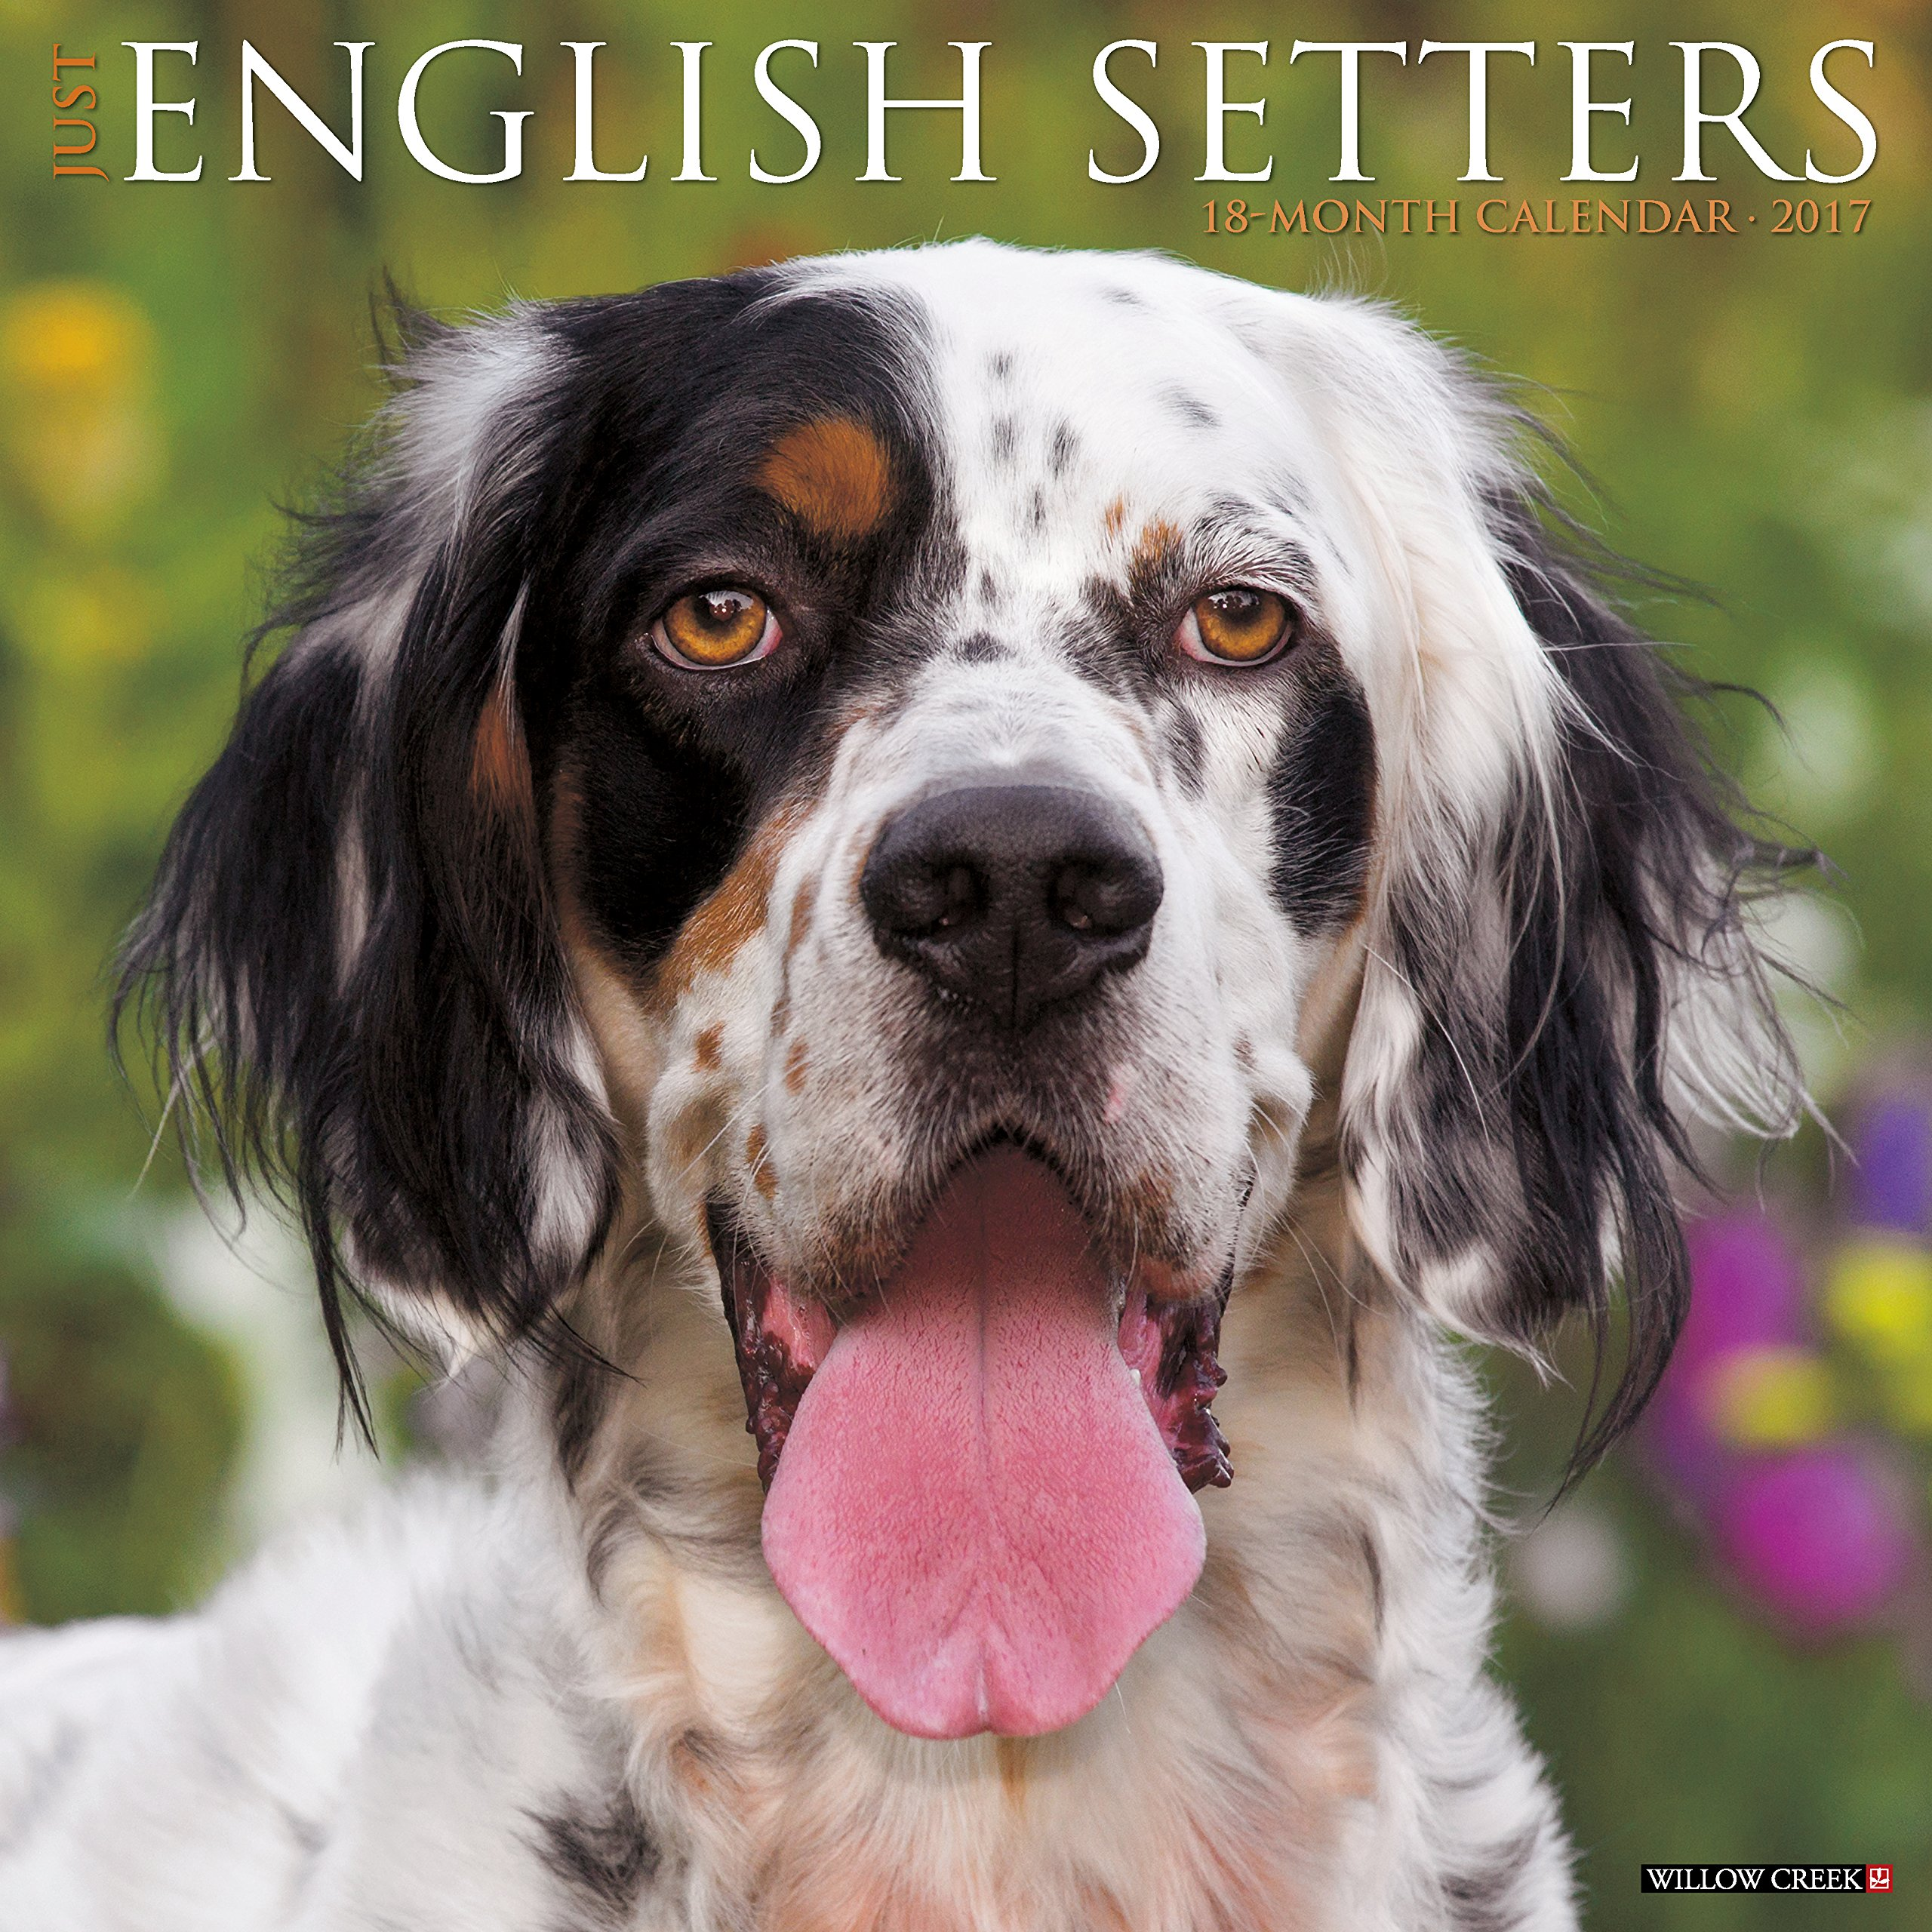 Just English Setters 2017 Wall Calendar (Dog Breed Calendars)